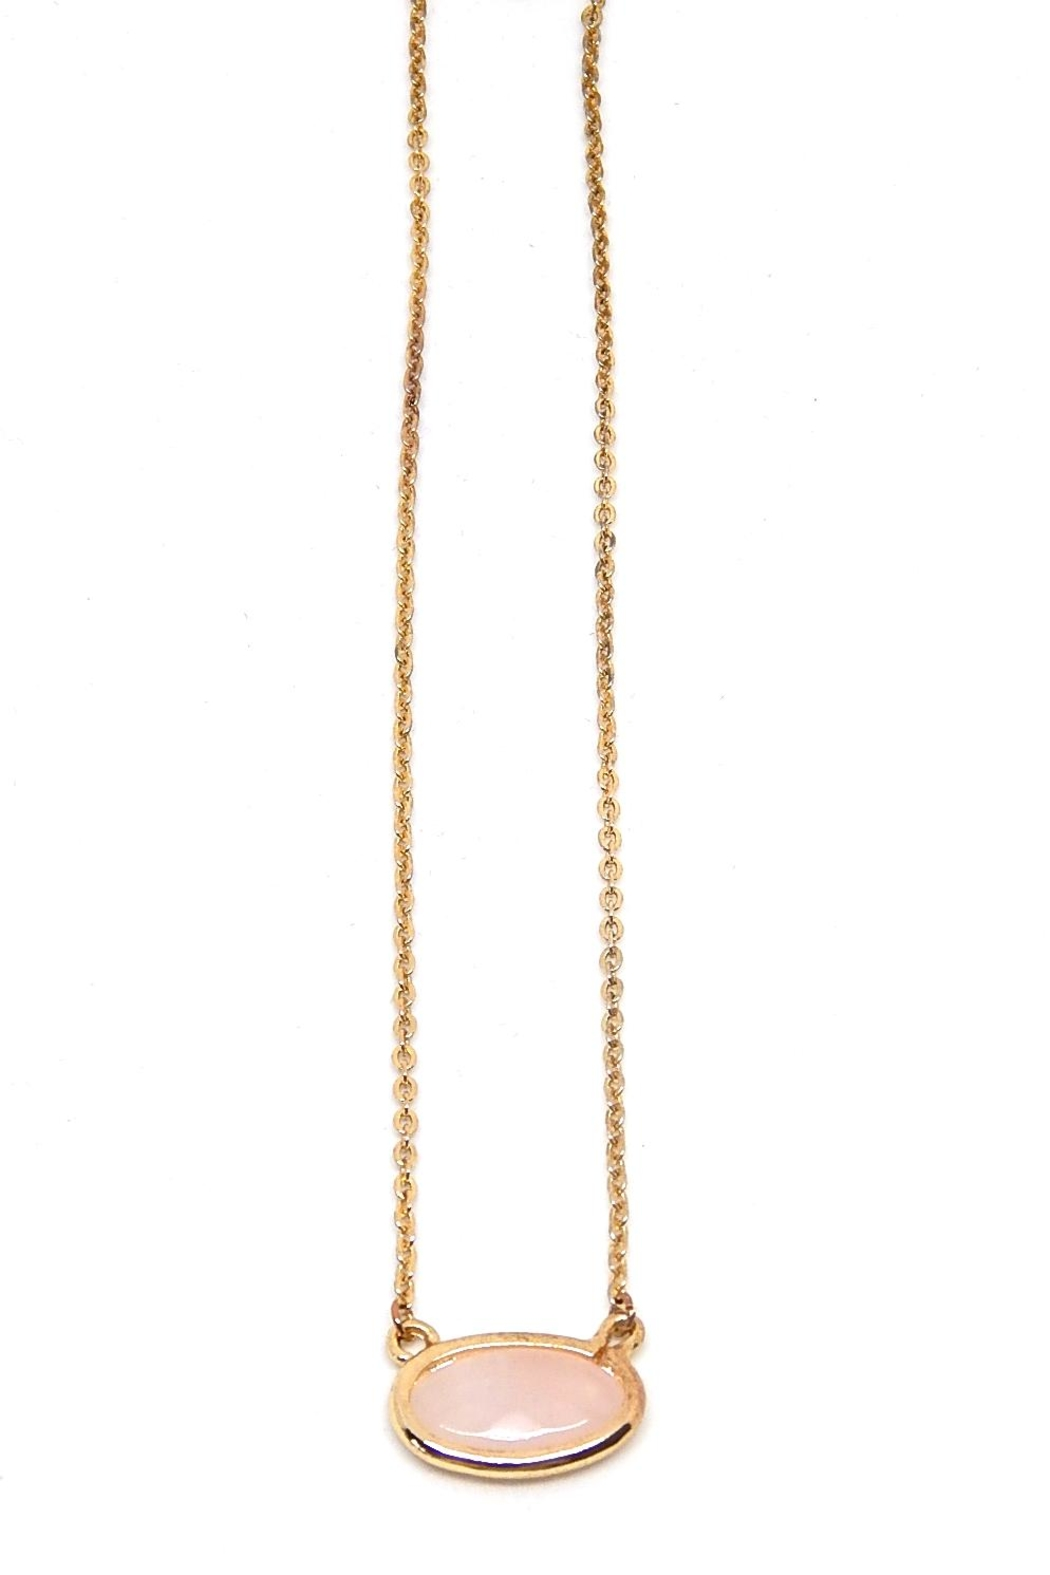 Beaucoup Designs Gold Camille Necklace - Main Image